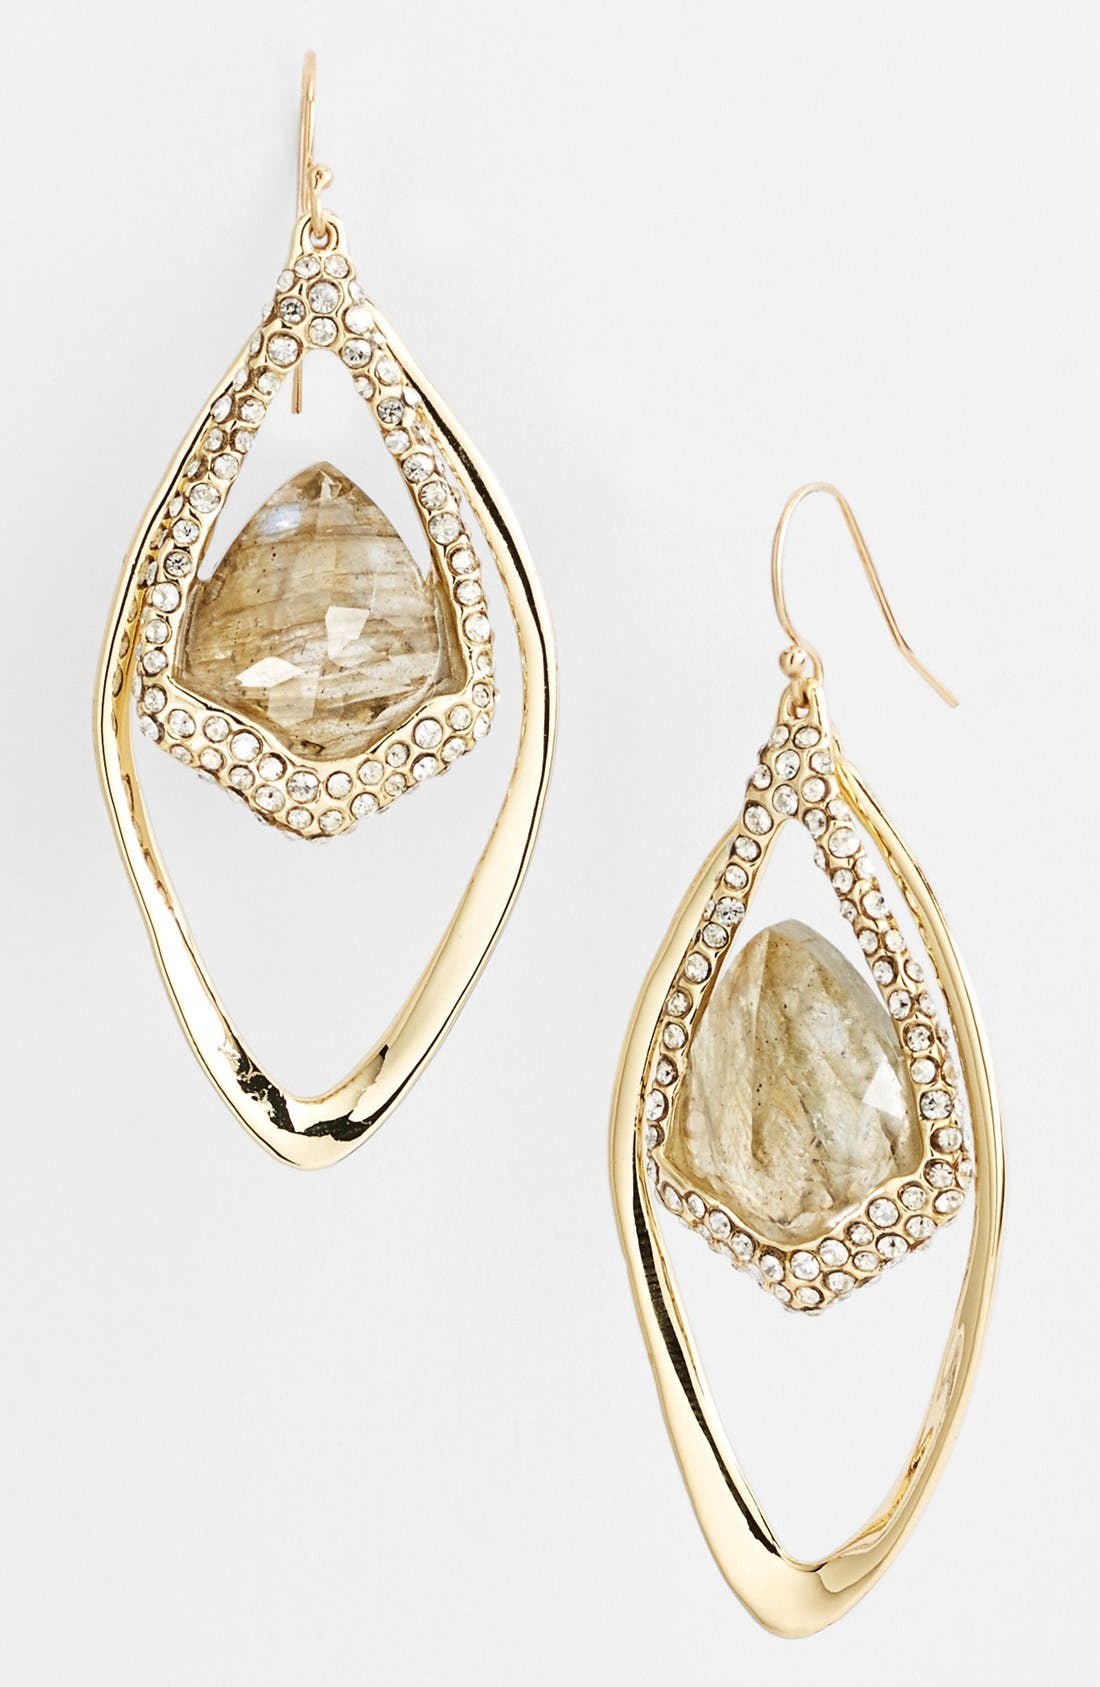 Main Image - Alexis Bittar 'Miss Havisham' Orbiting Drop Earrings